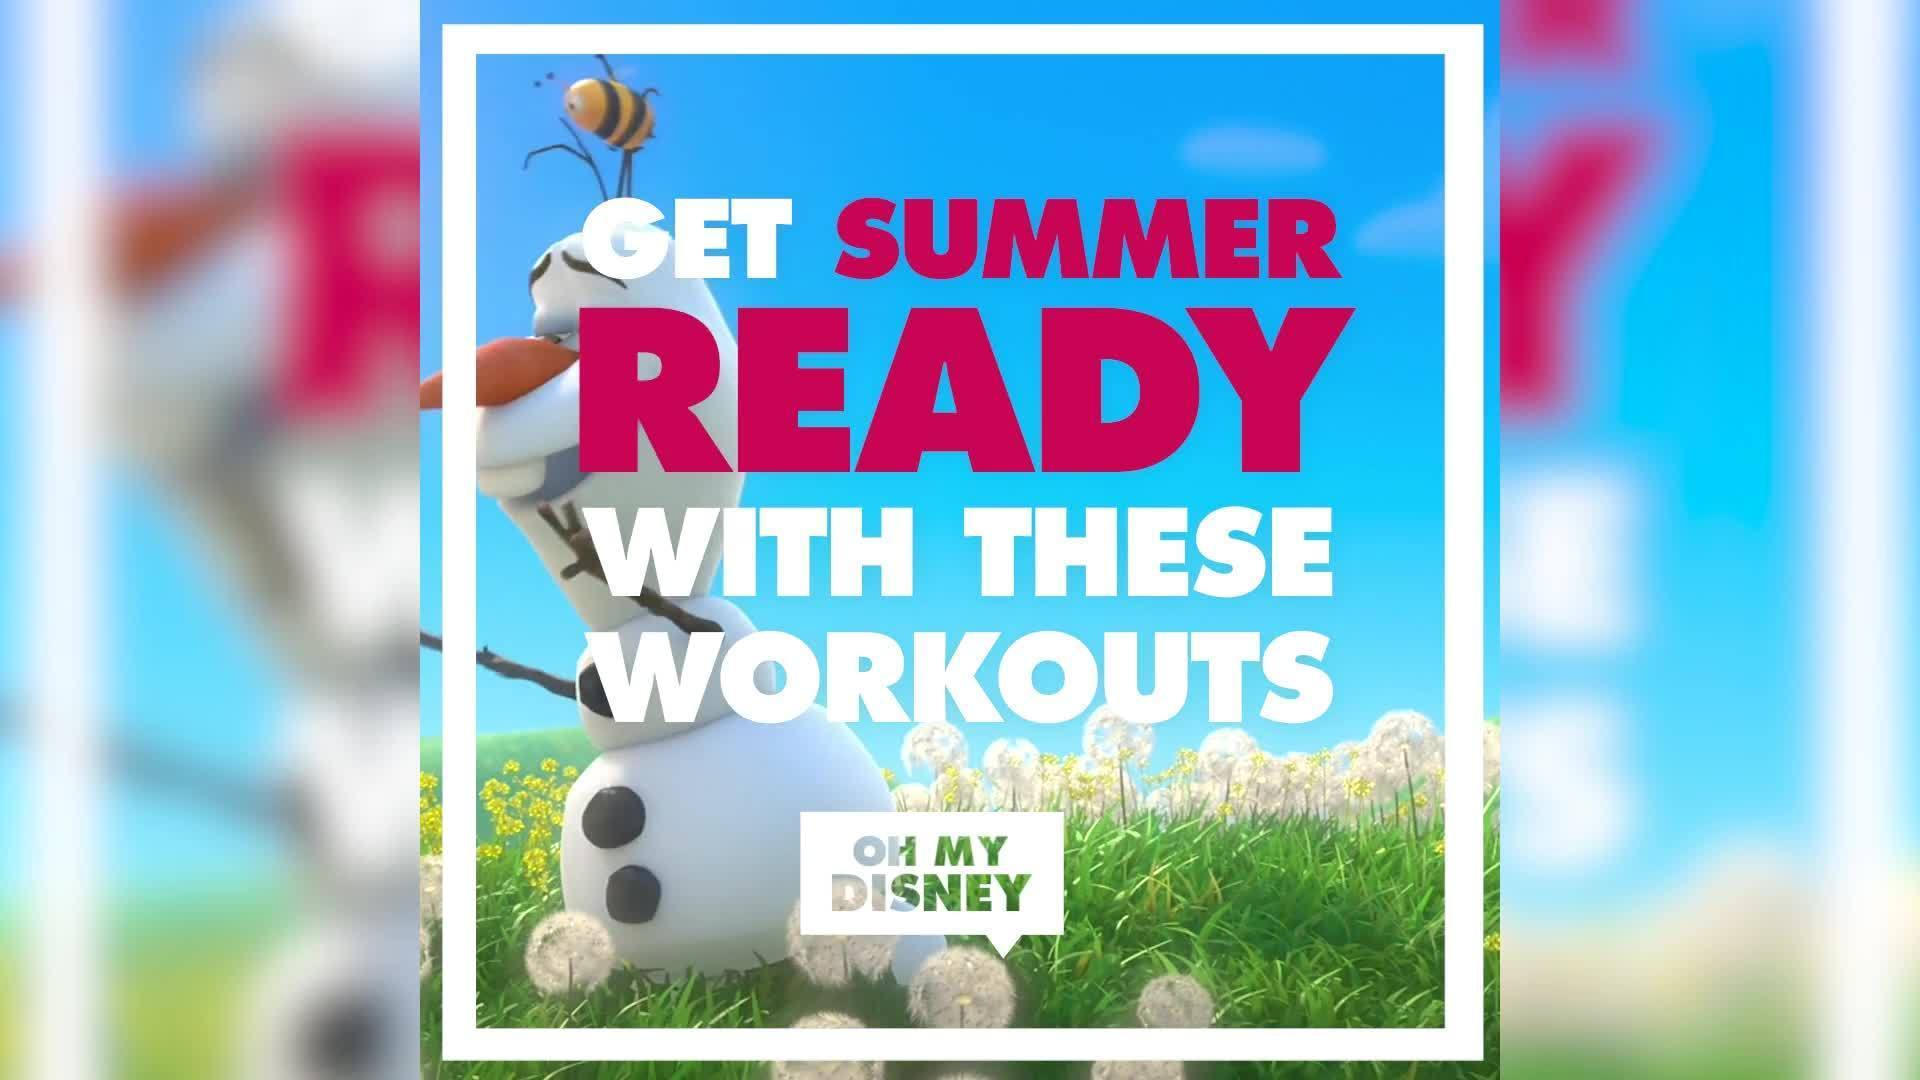 Get Summer Ready With These Workouts